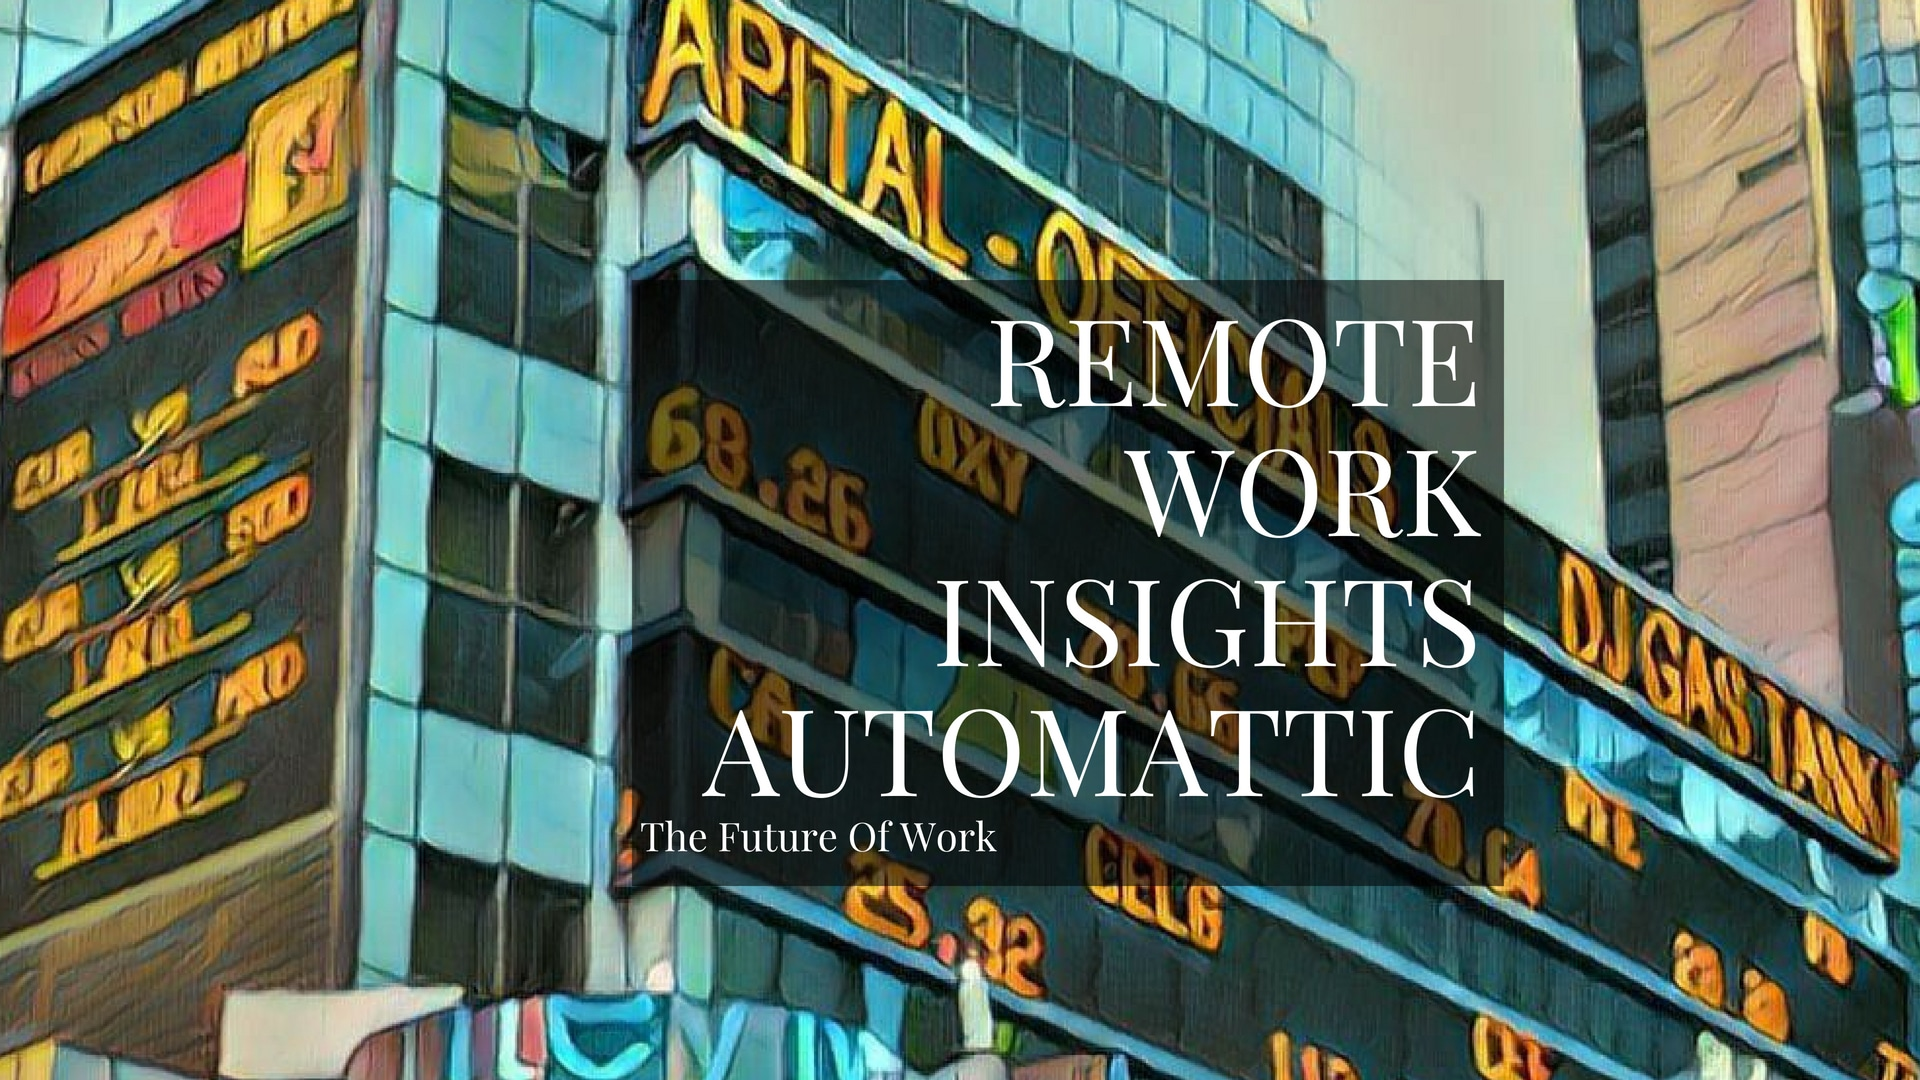 10 Remote Work Insights From Matt Mullenweg's Automattic